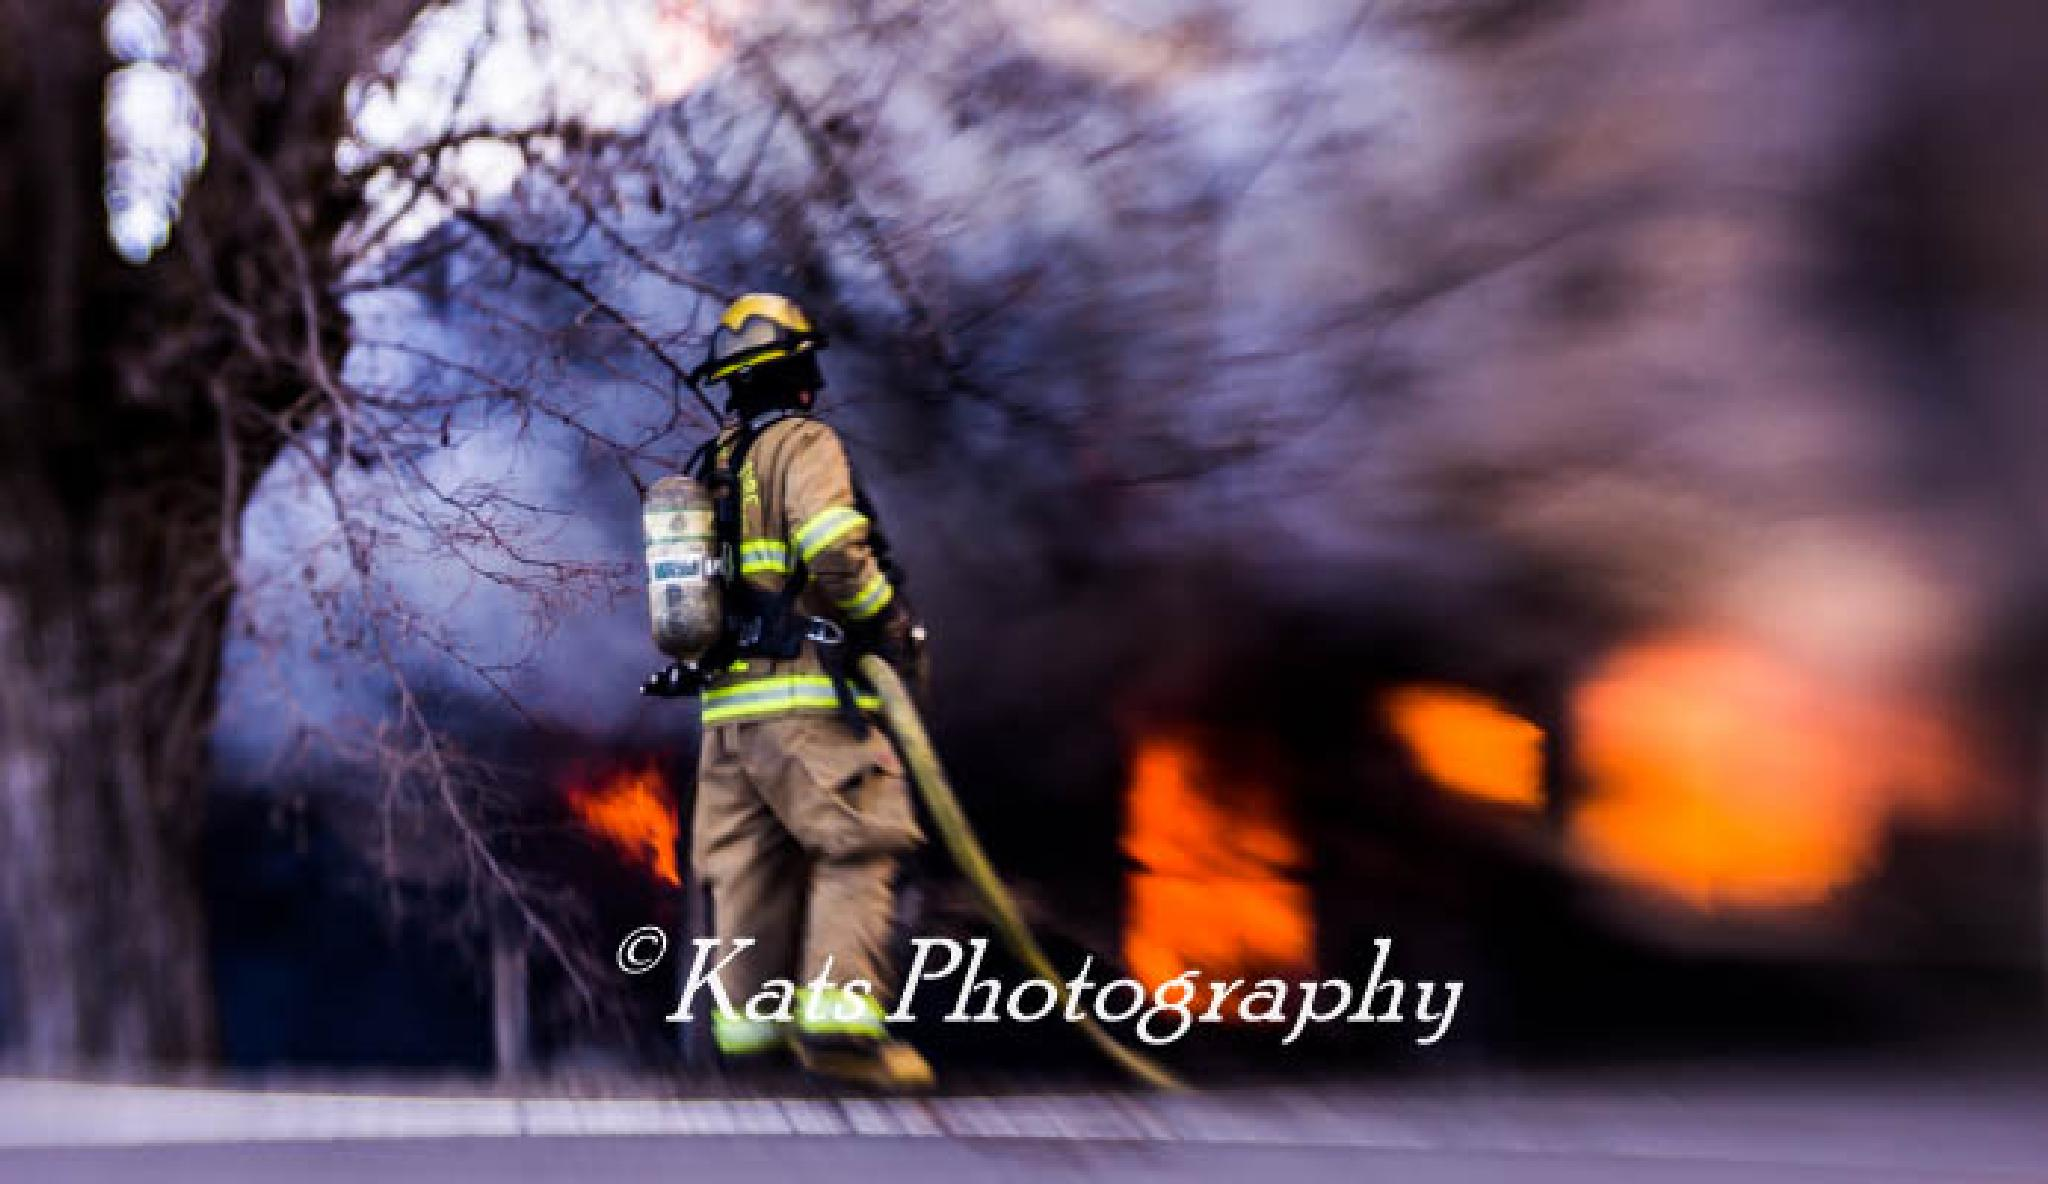 KCFD4 - It's Just Practice by Kathren Taylor